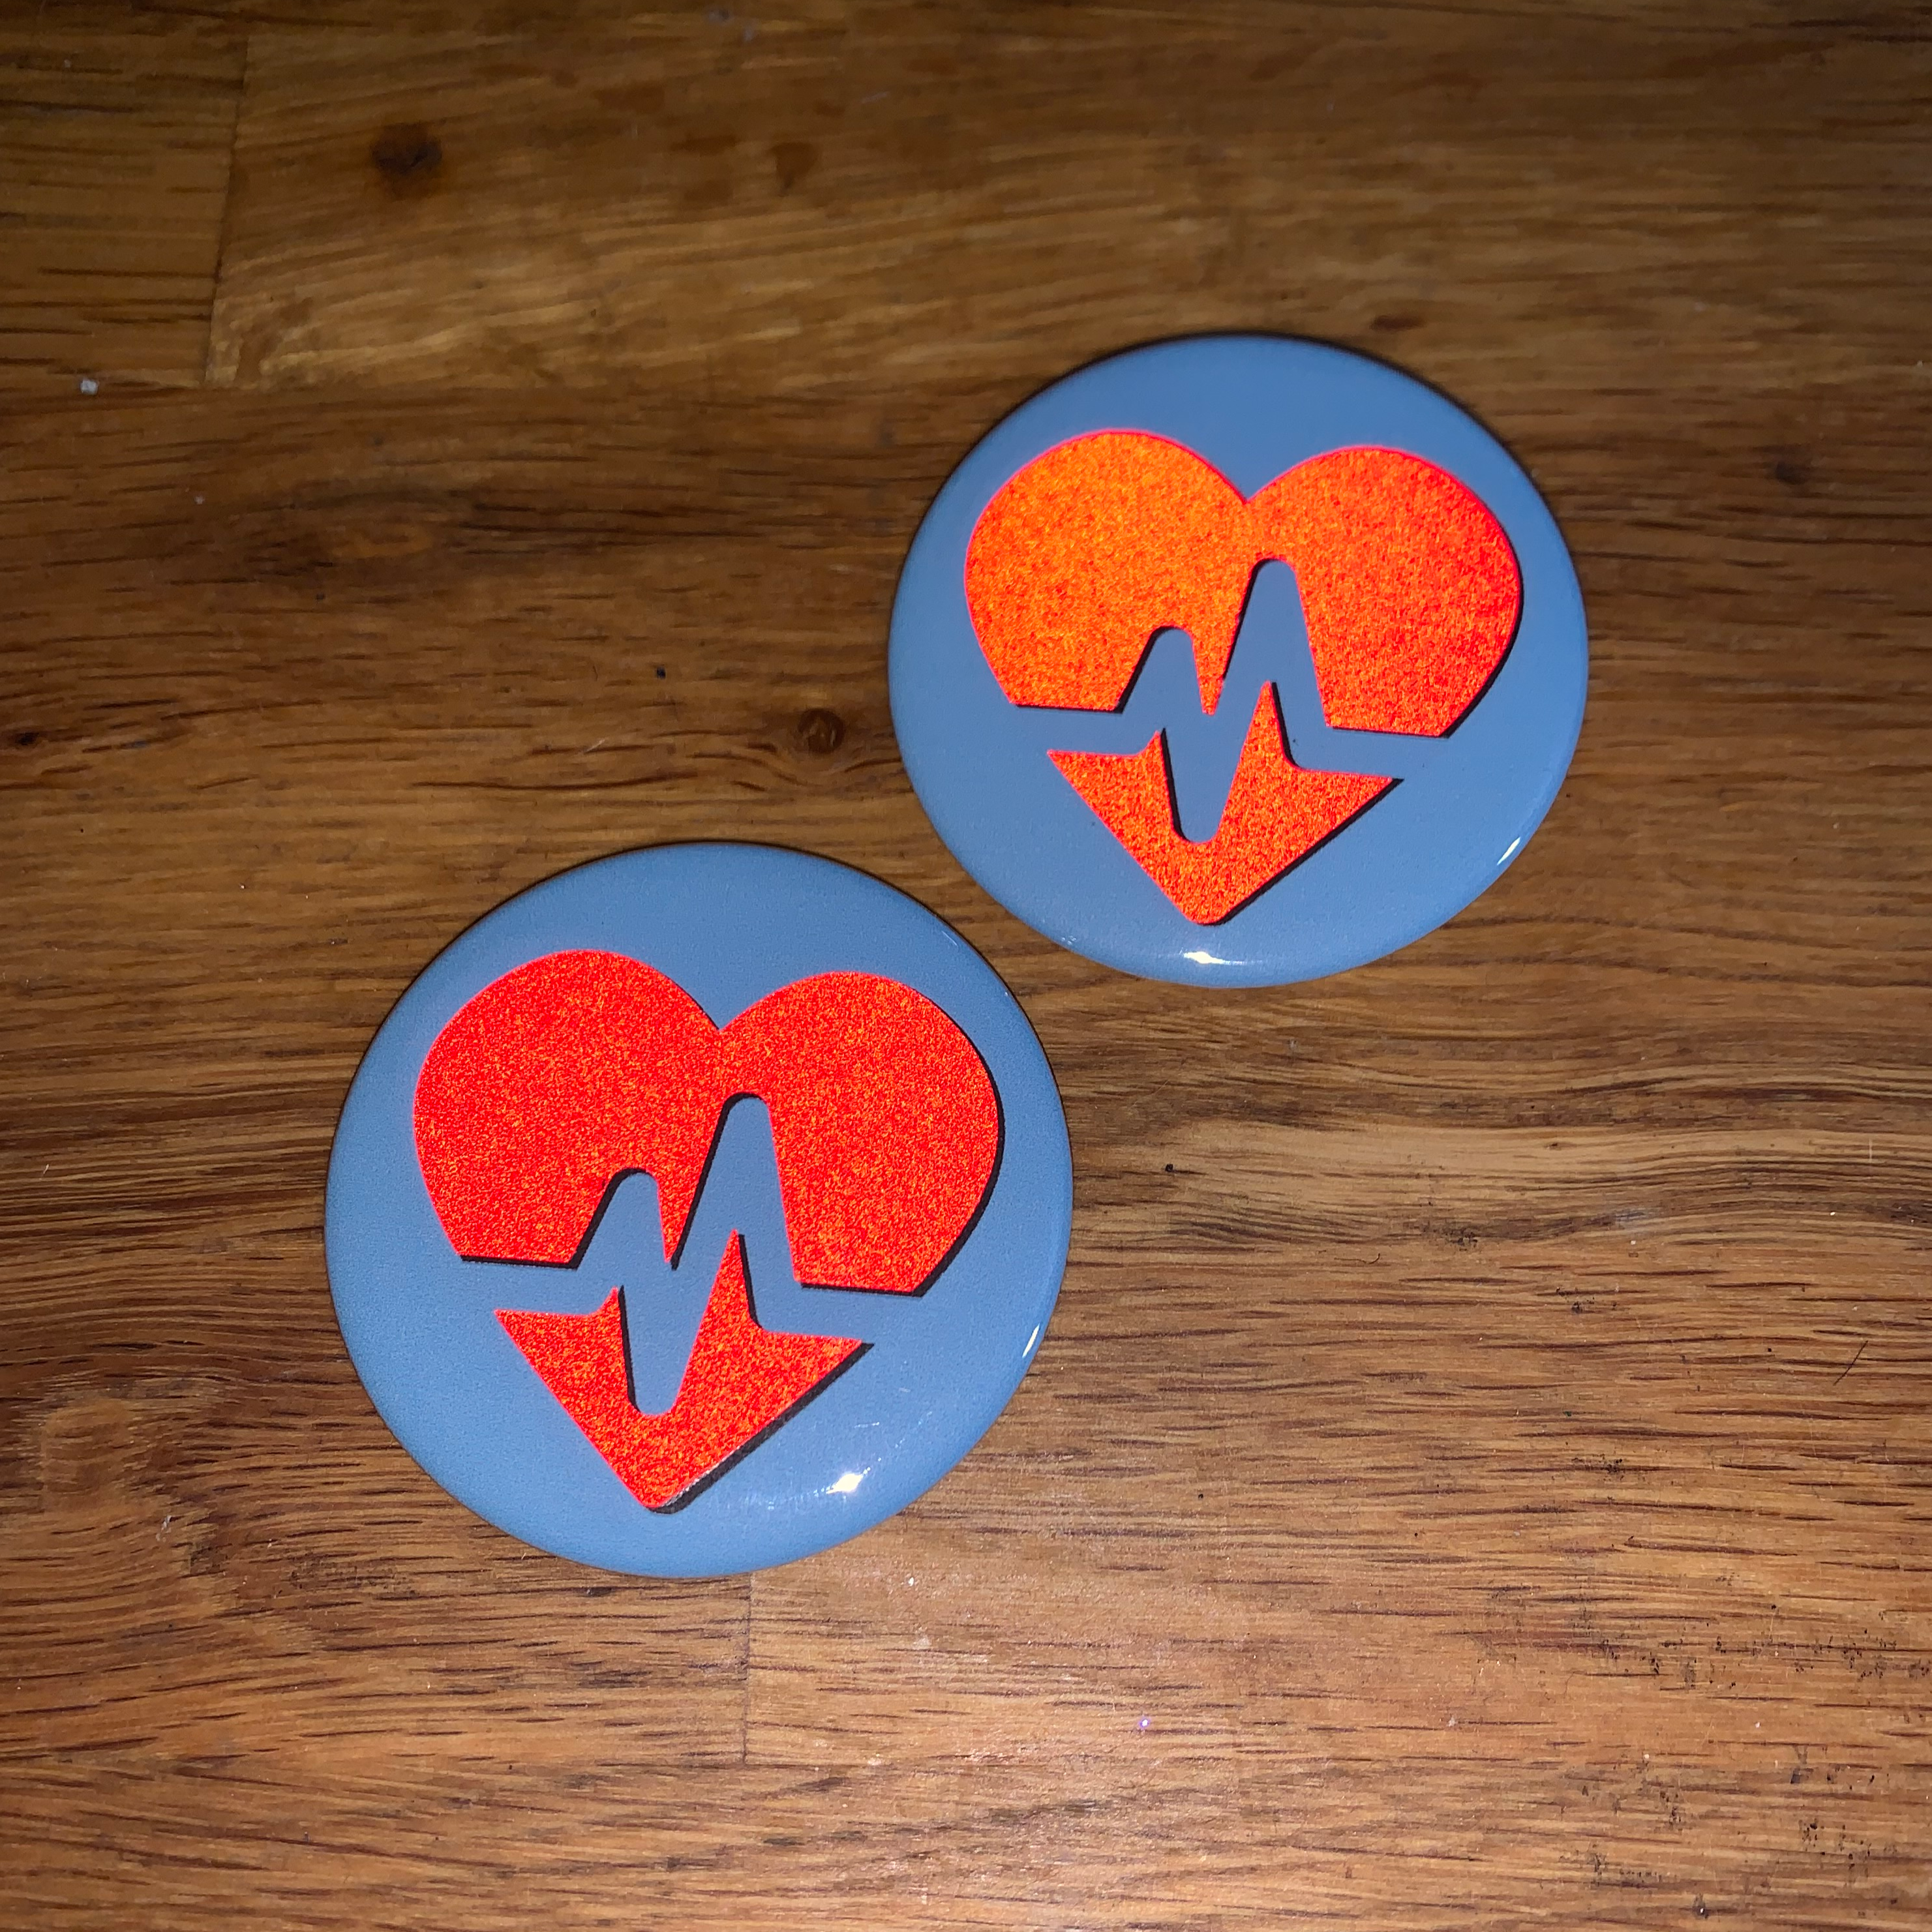 Buttons for Henry - Reflective heart